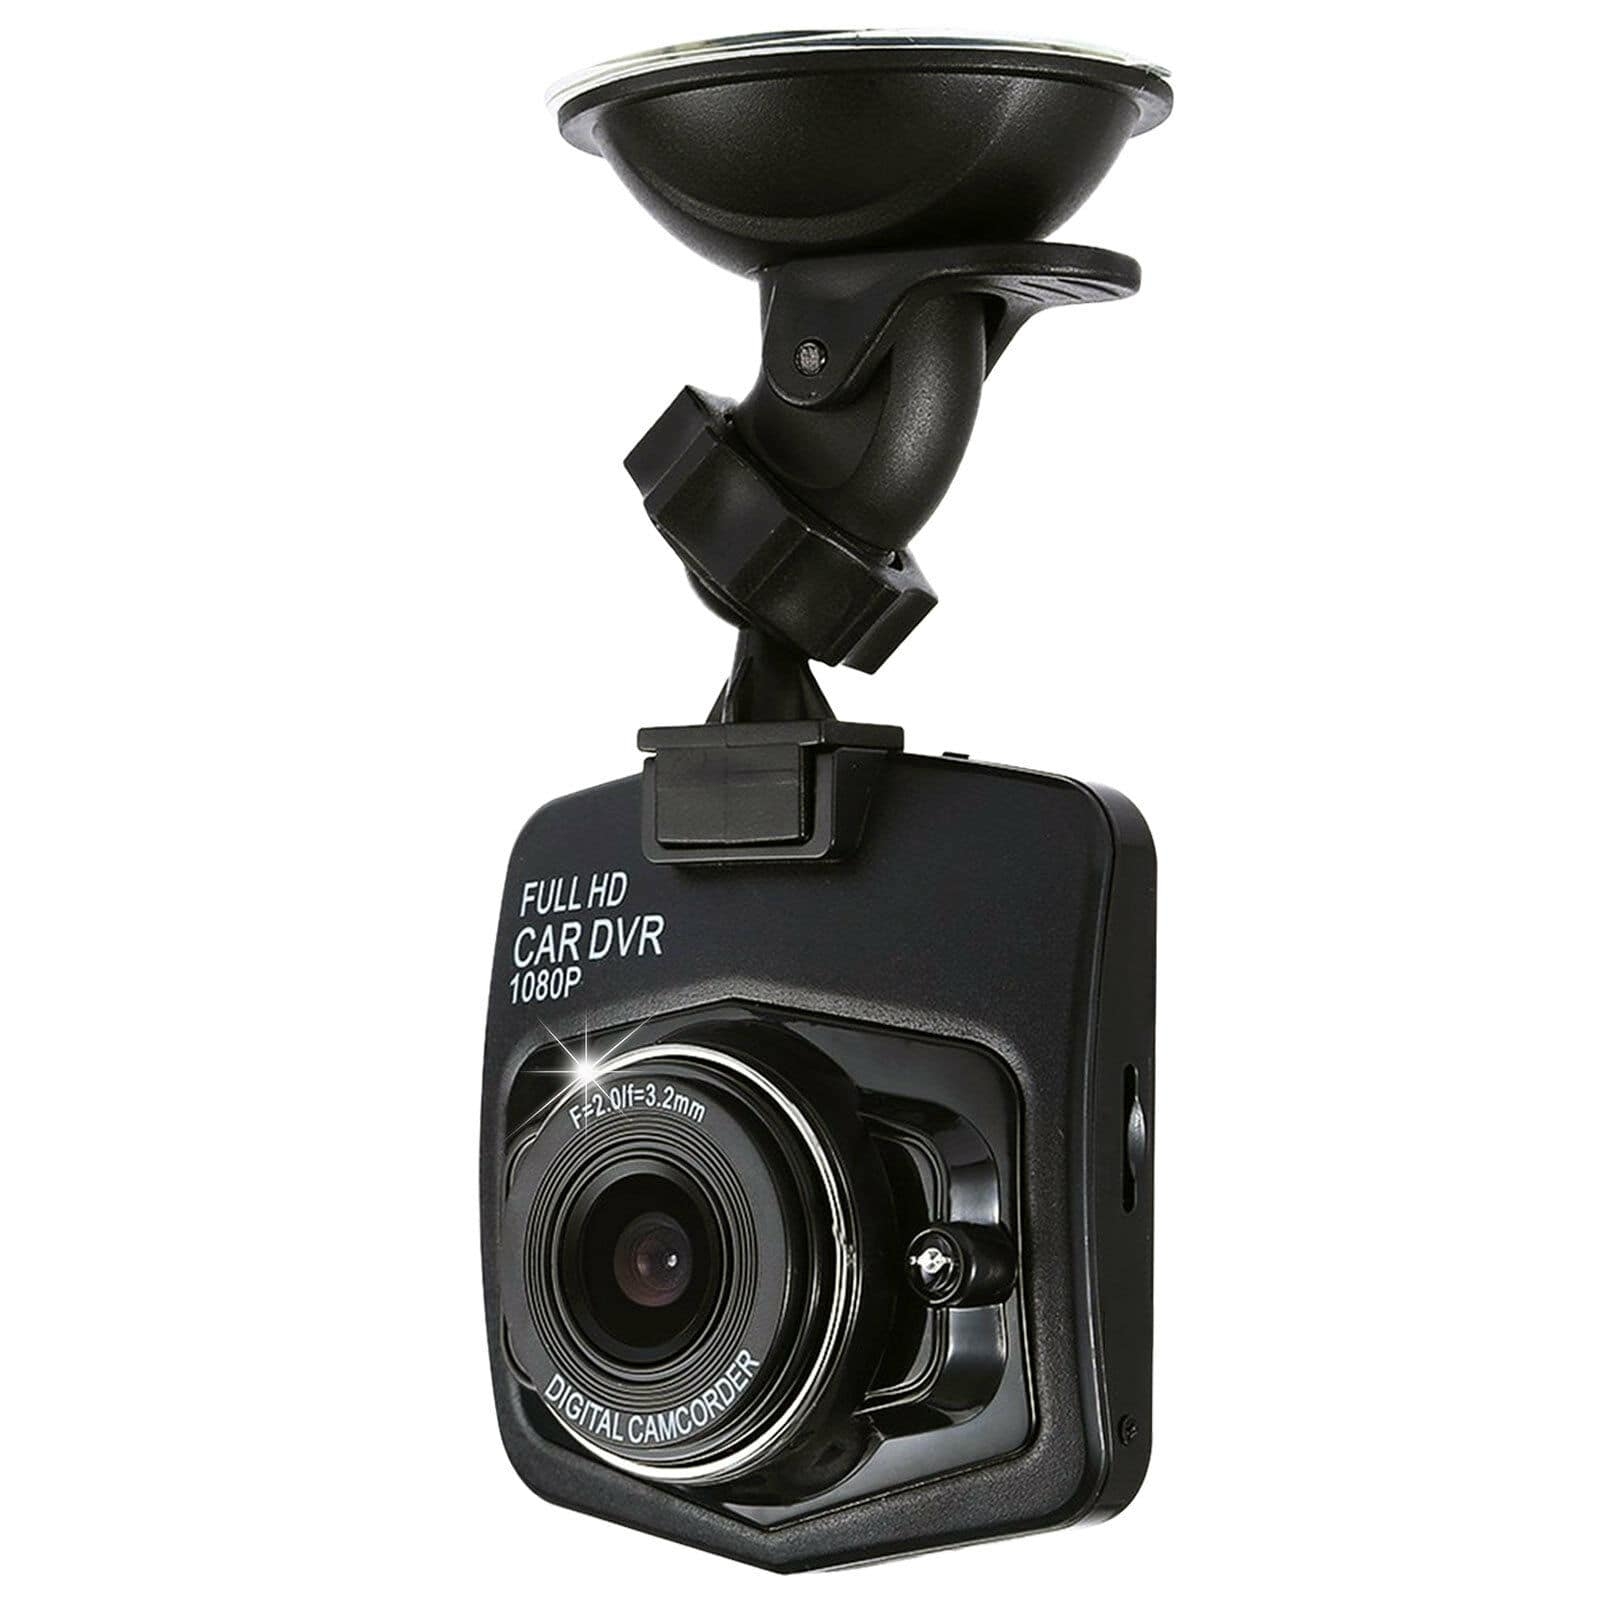 Car Camcorder FULLHD CAR DVR 1080p